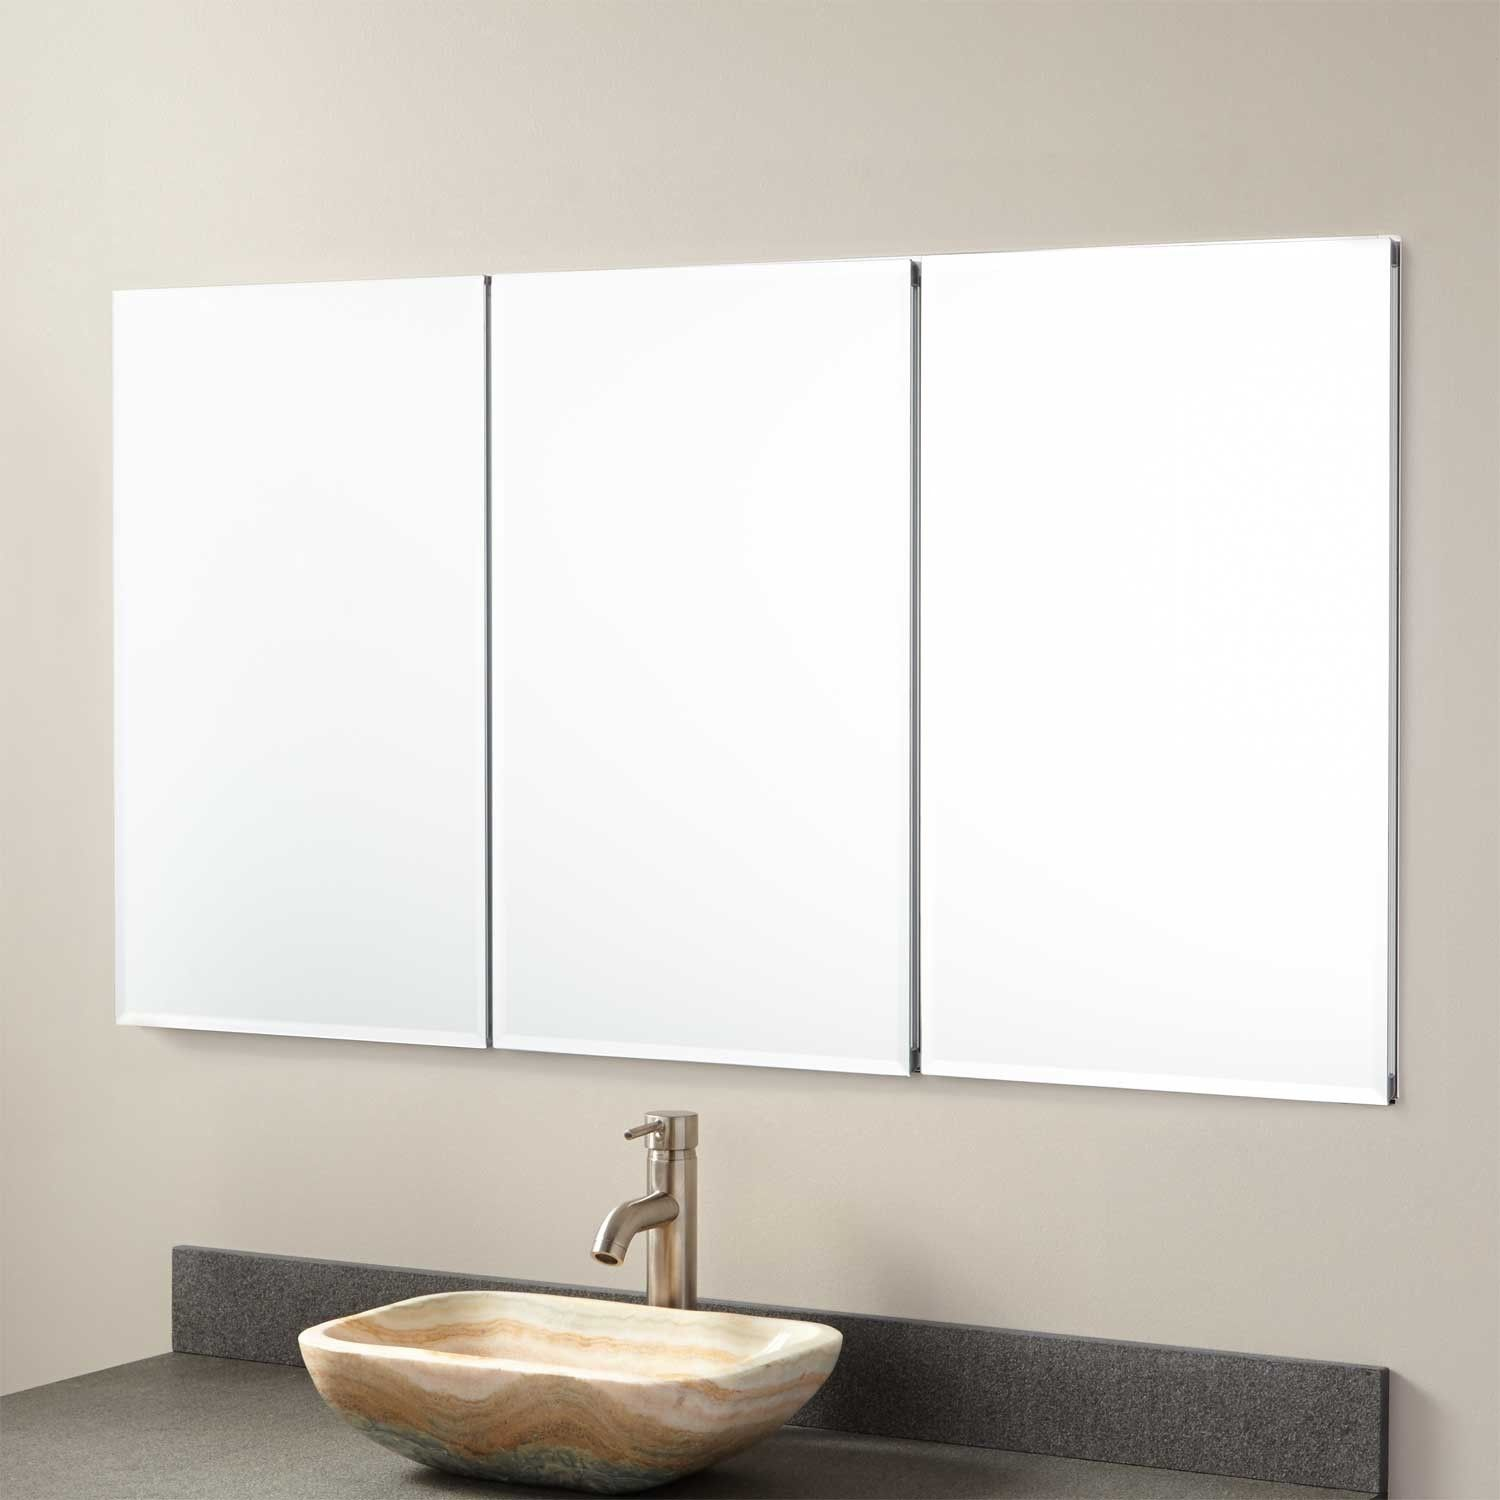 Furlong Recessed Mount Medicine Cabinet With Mirror 530